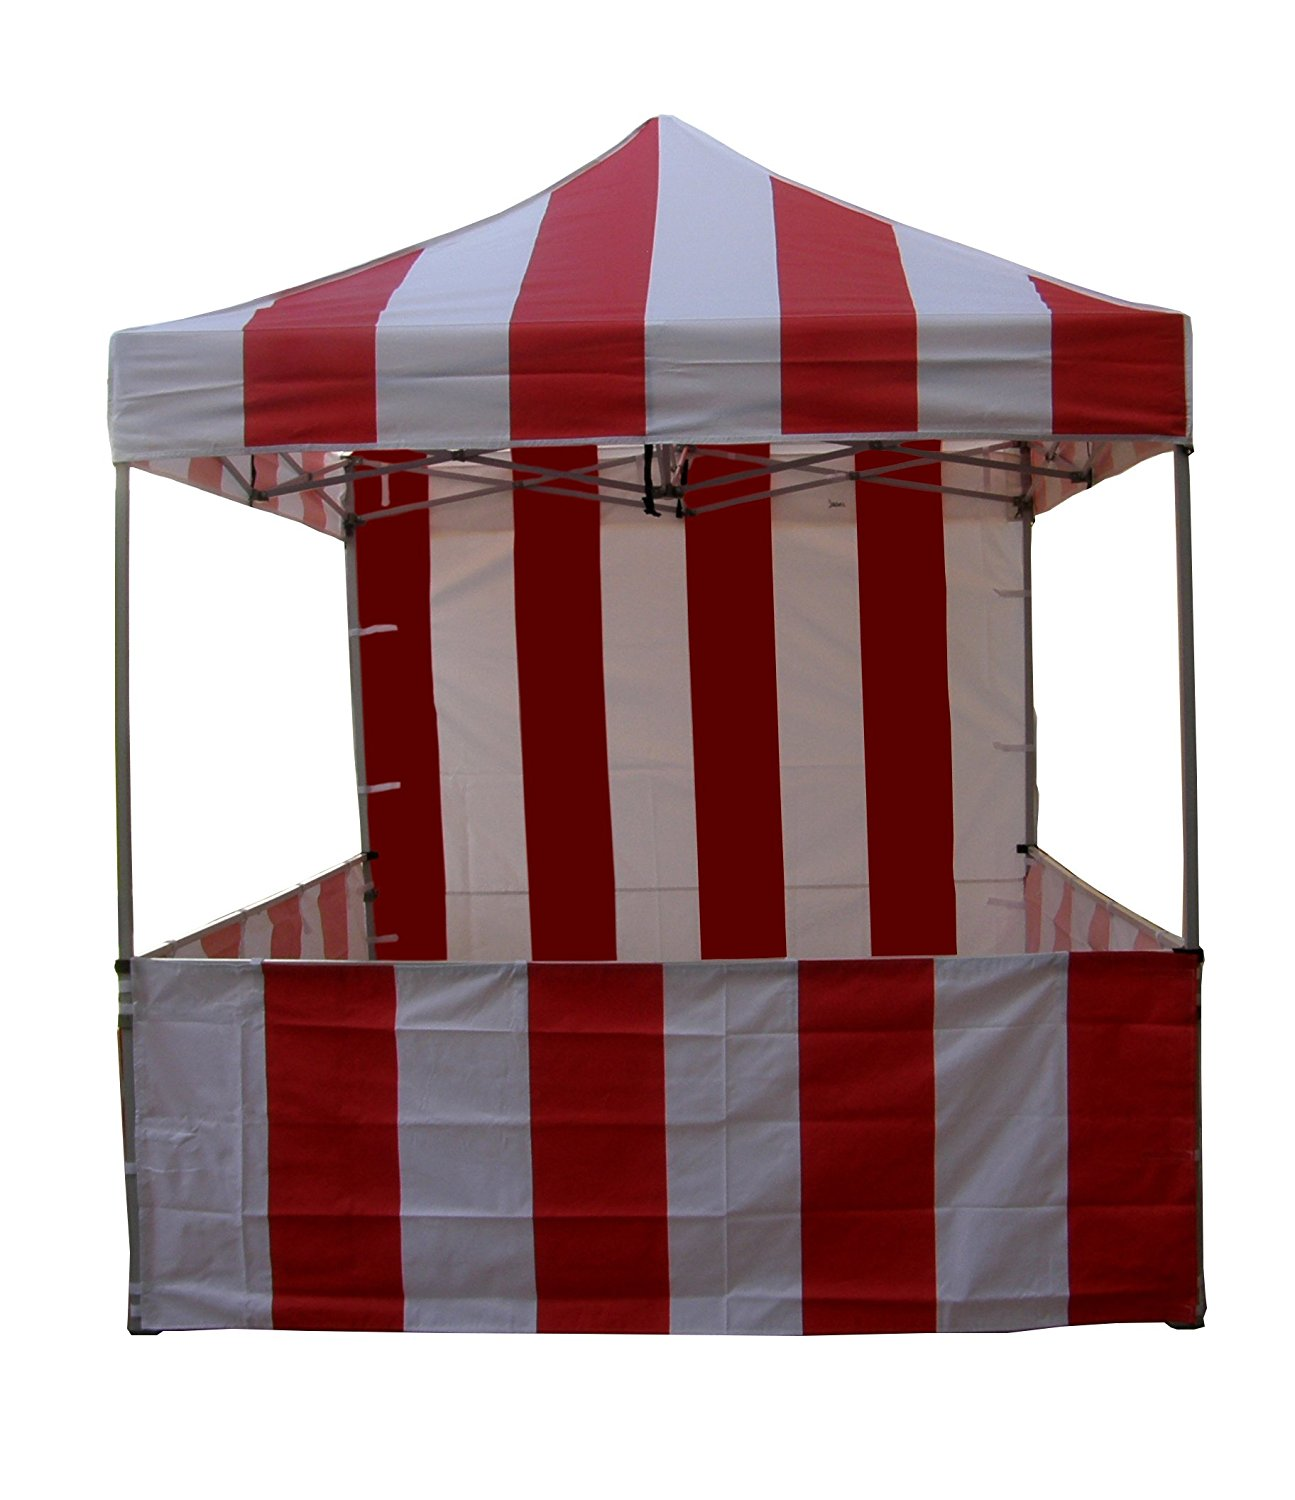 Impact Canopy 8x8 Pop Up Canopy Tent, Carnival Tent Kit, Powder Coated Steel Frame, Sidewall and Half walls, Red/White Stripe